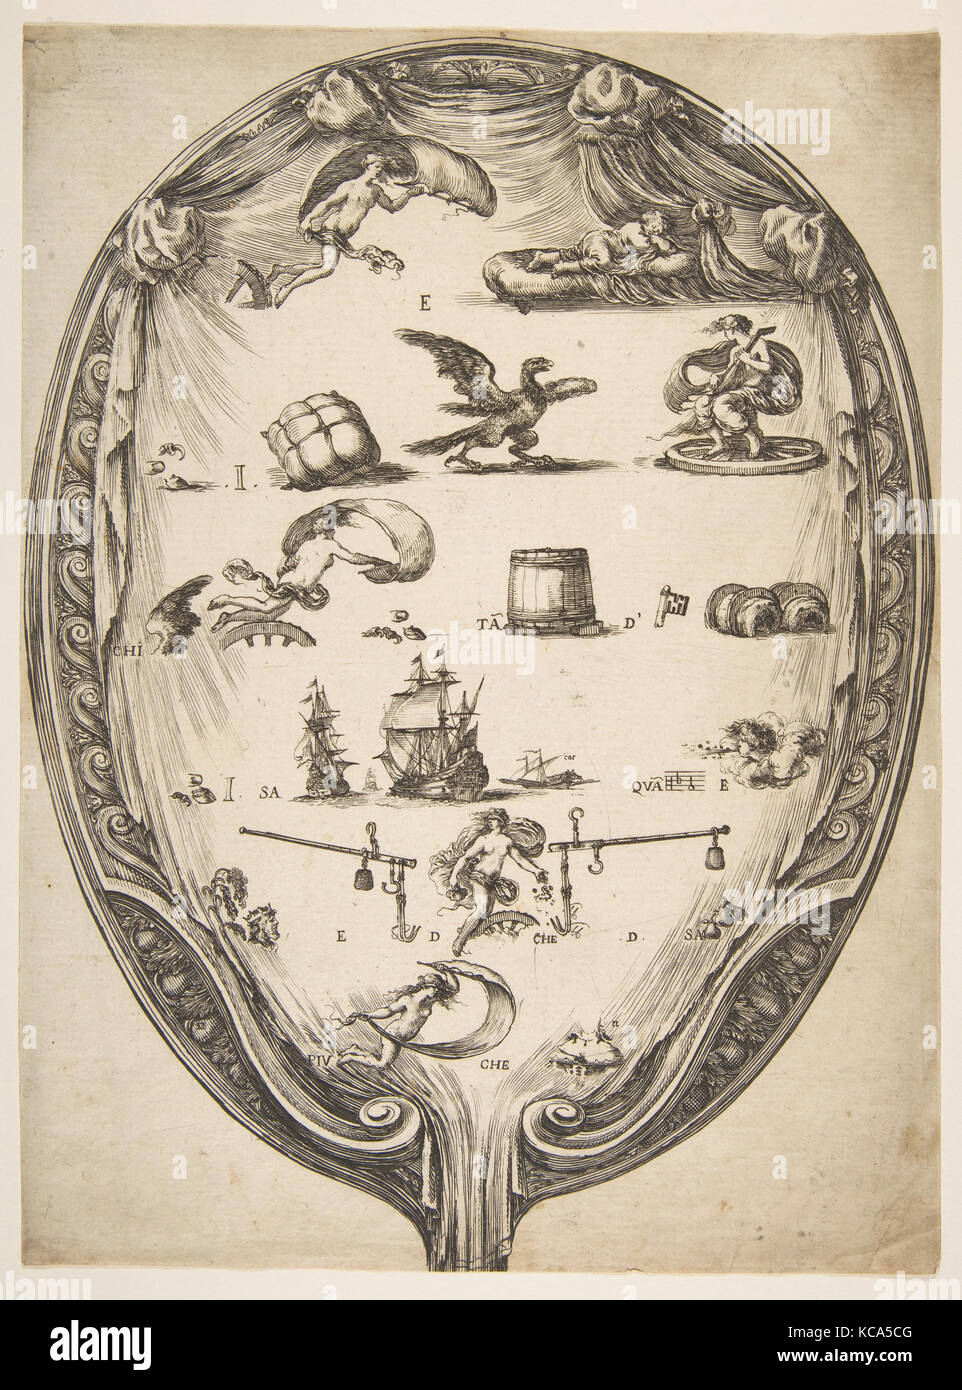 Screen with Rebus of Fortune, Etched by Stefano della Bella, ca. 1639 - Stock Image